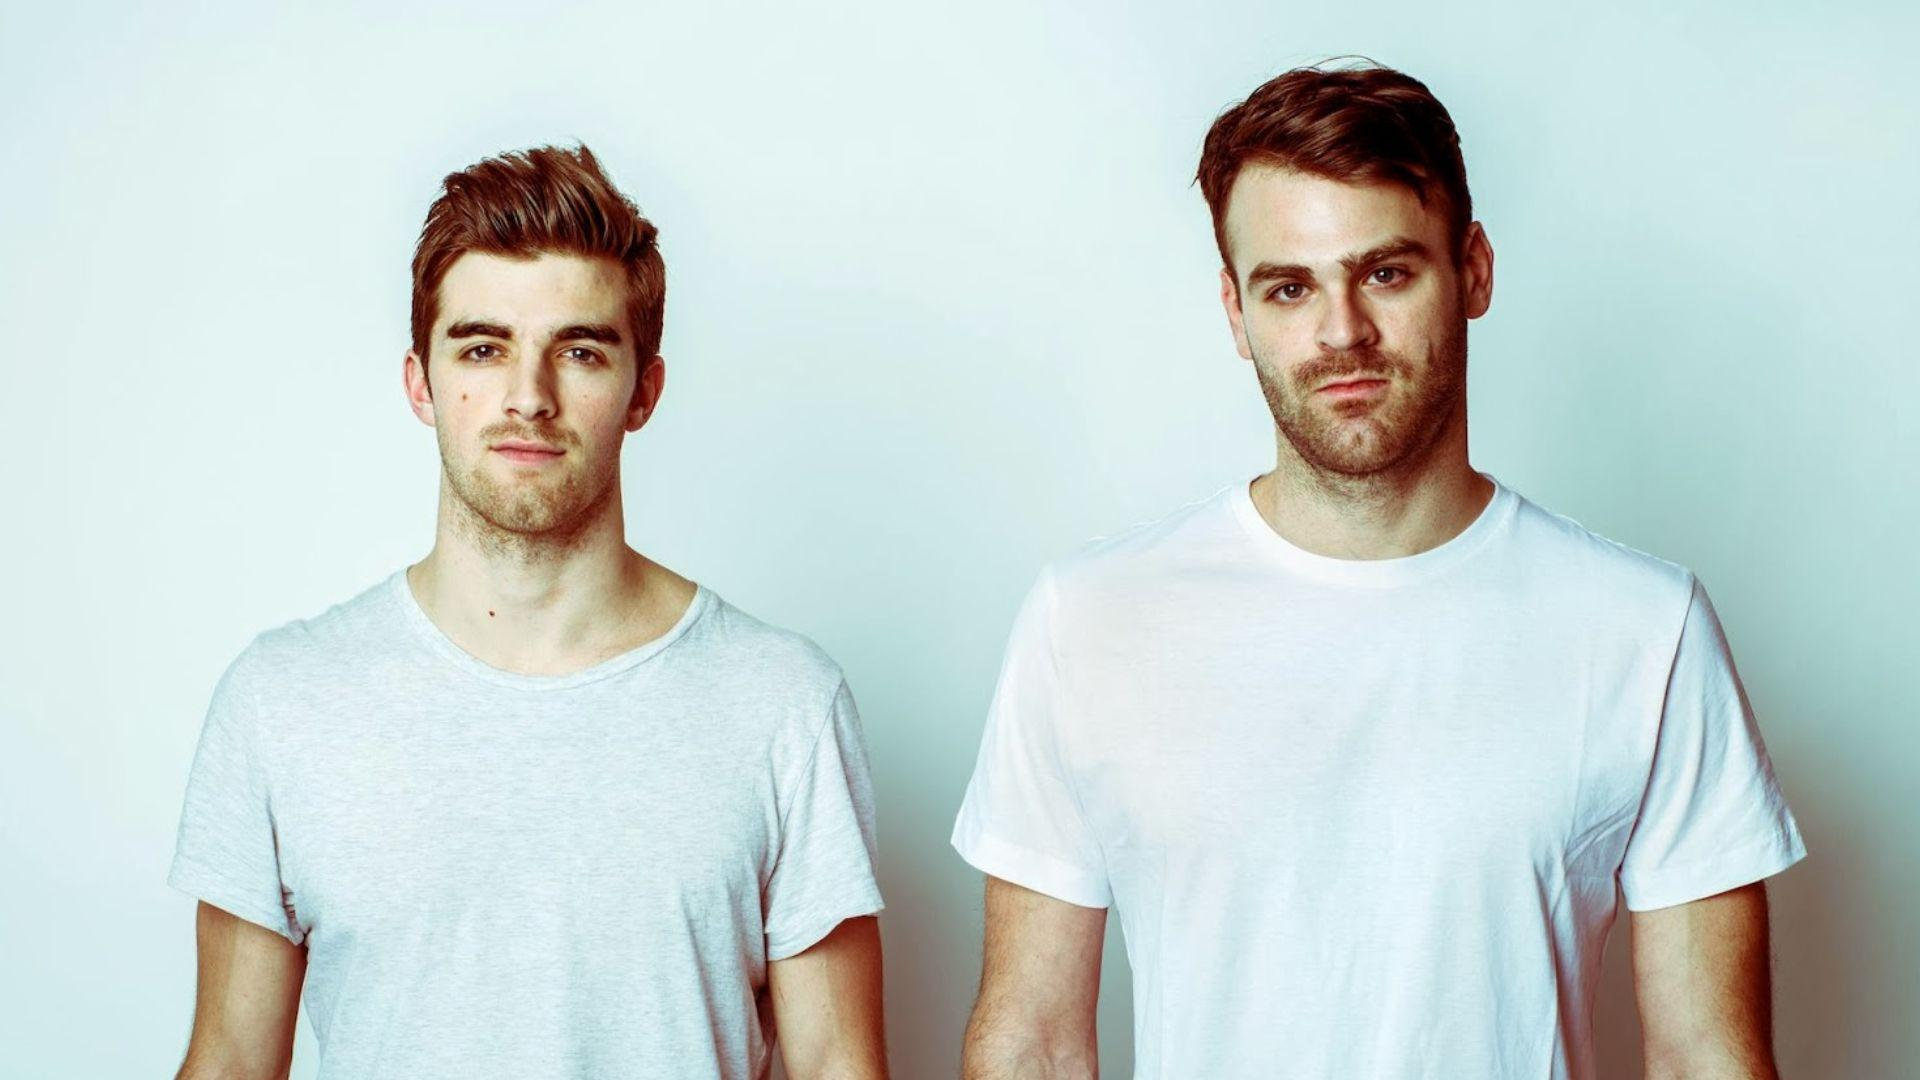 The Chainsmokers | Music fanart | fanart.tv